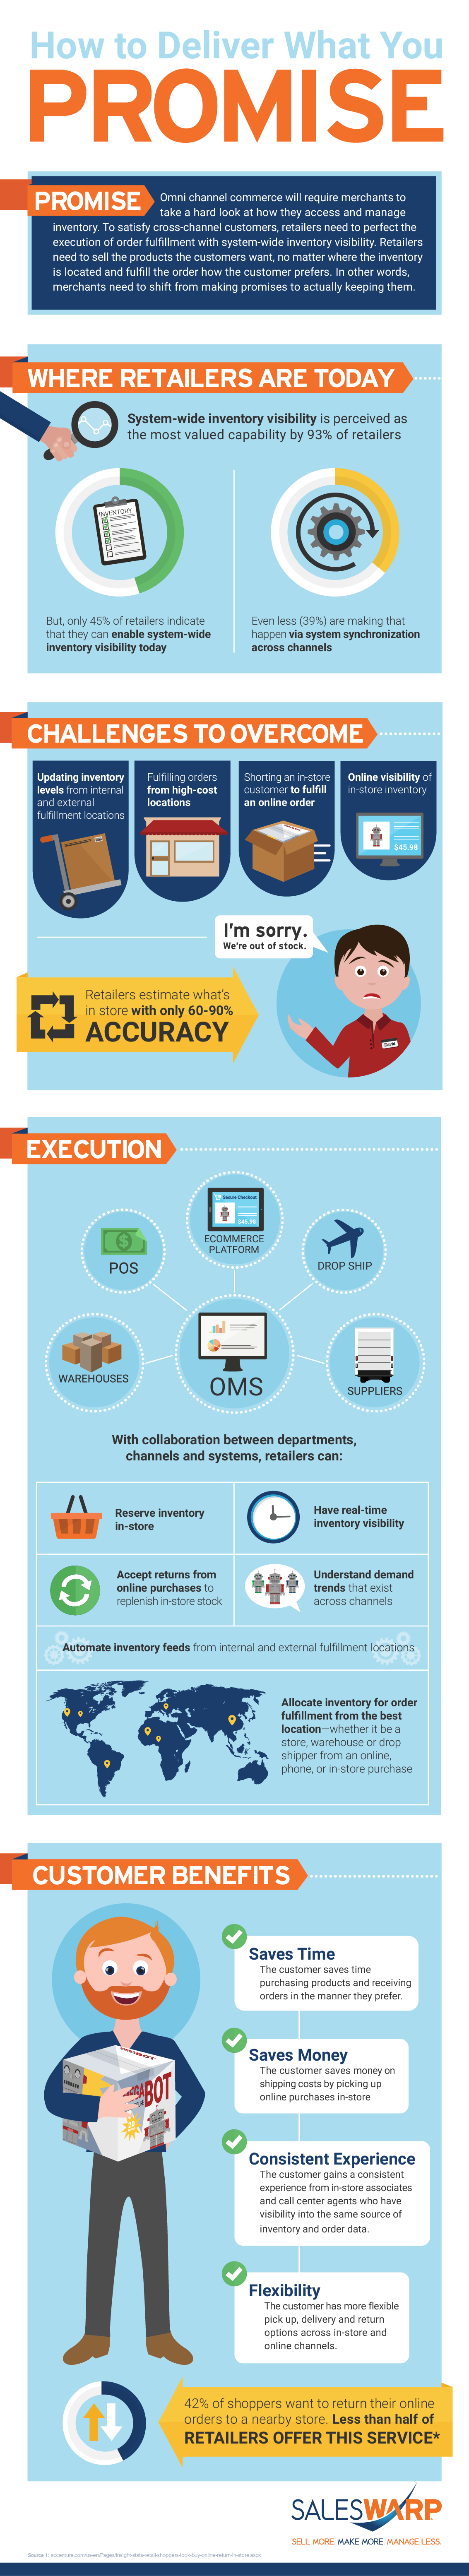 Inventory Management Infographic: How to Deliver What You Promise